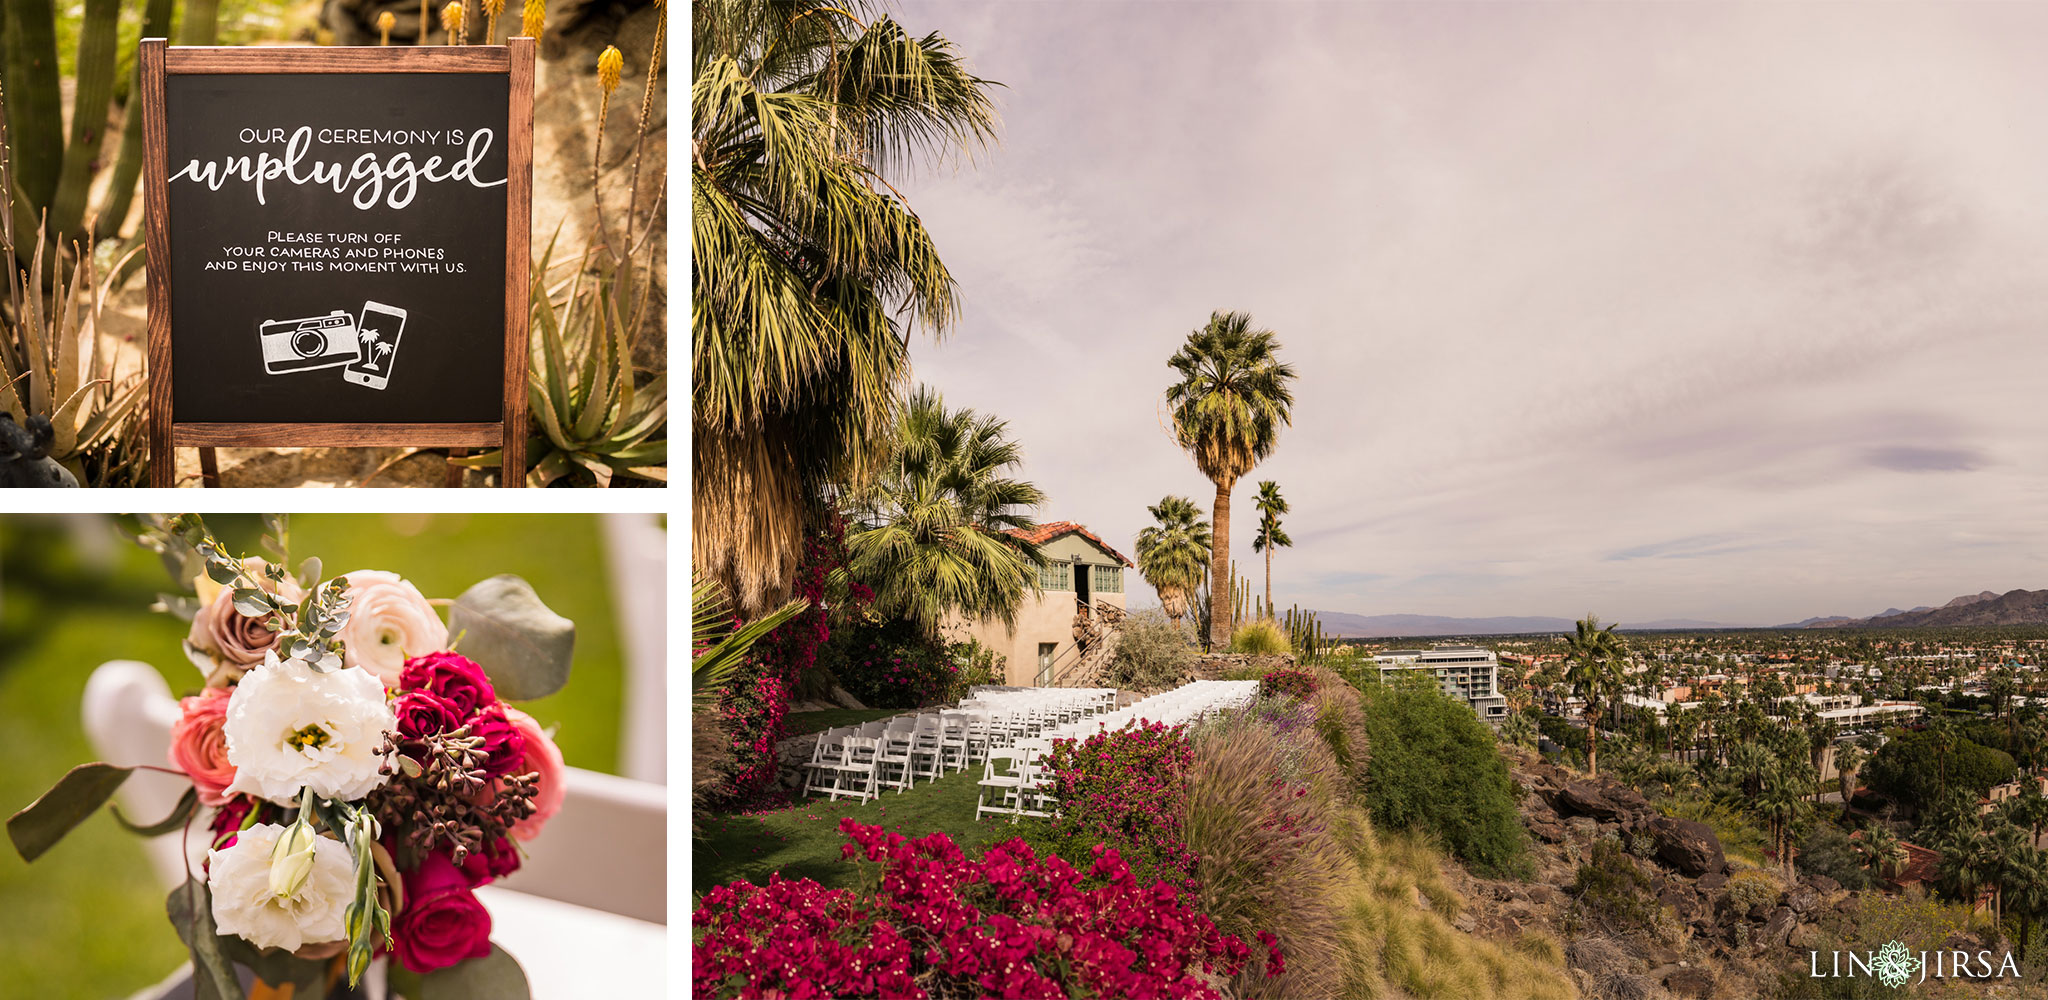 16 odonnell house palm springs wedding ceremony photography